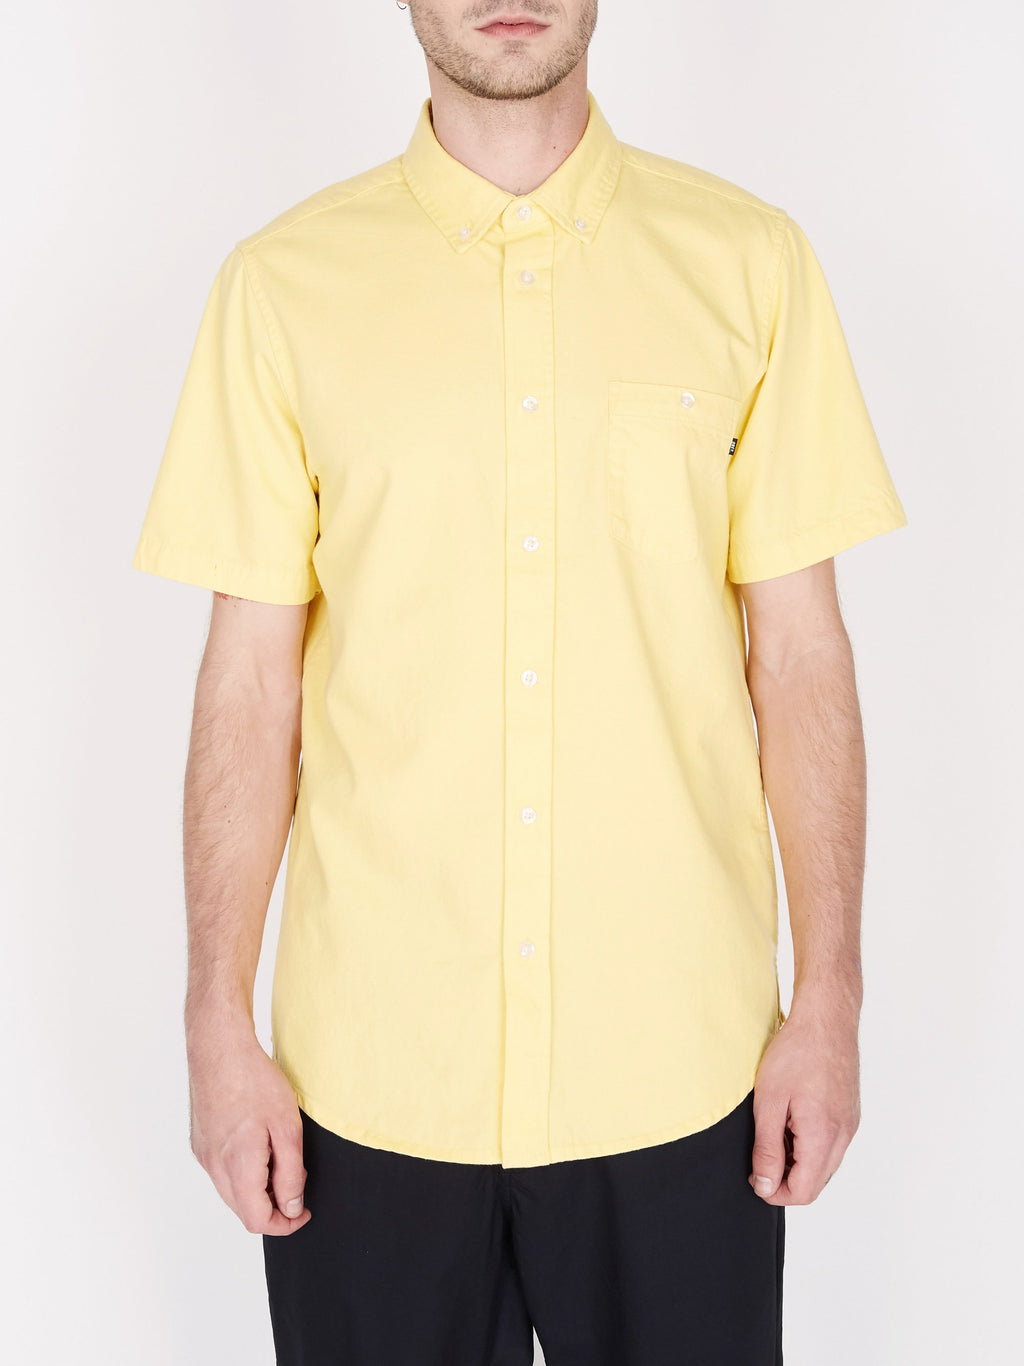 Obey - Keble Denim Short Sleeve Shirt - Lemon Drop - Guys